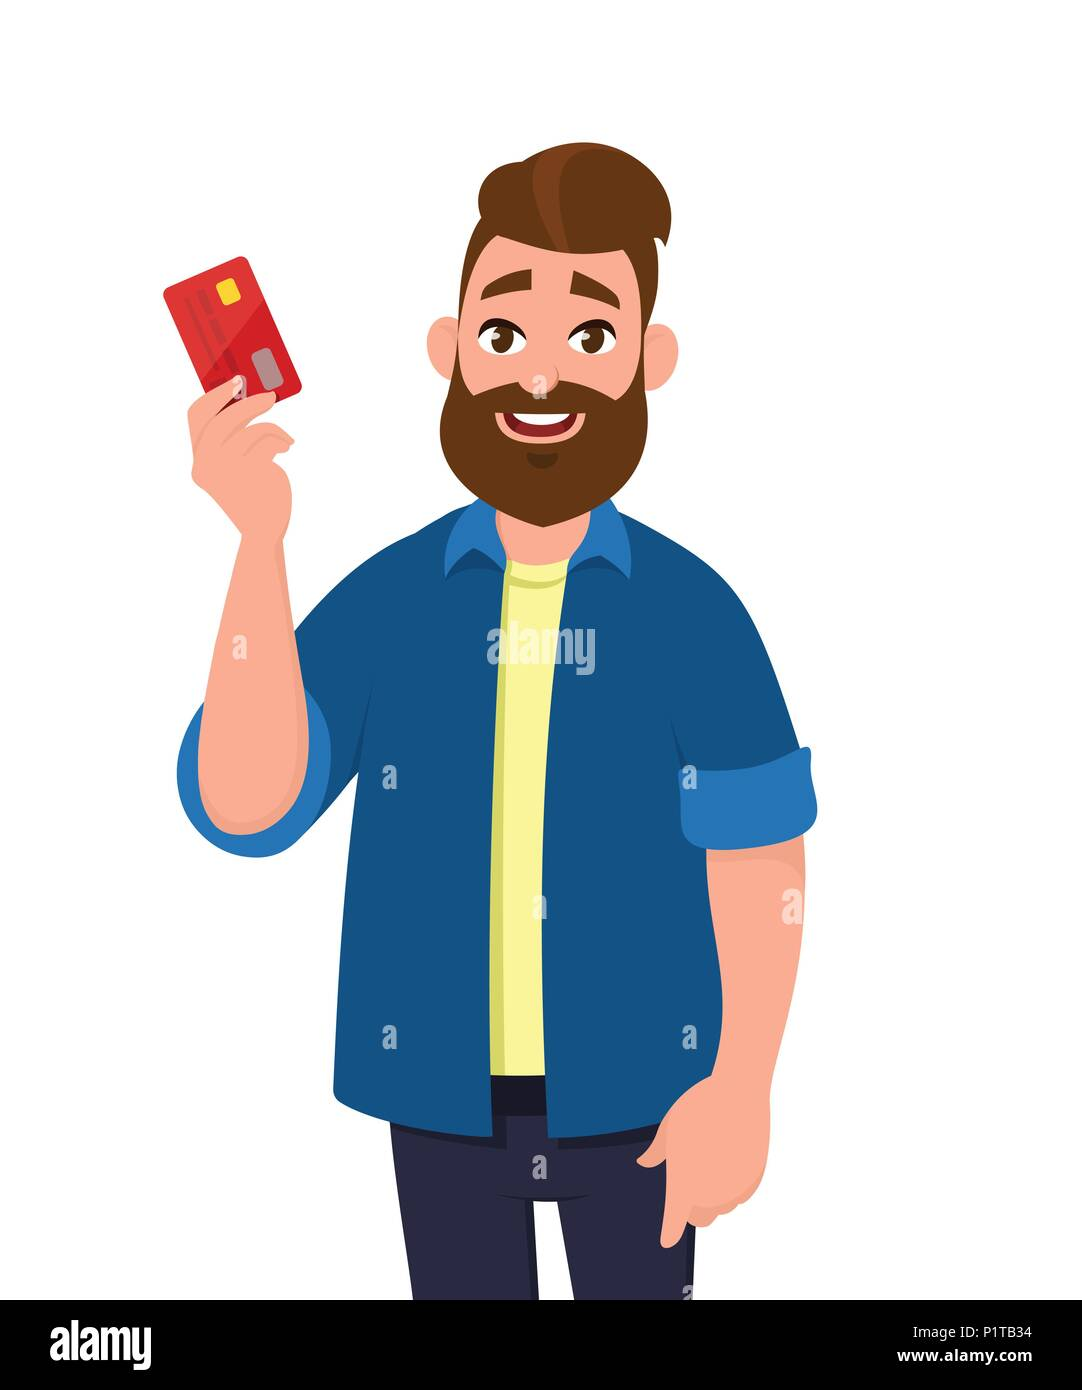 Young man is holding credit/ debit card.  Man is showing banking card. - Stock Vector